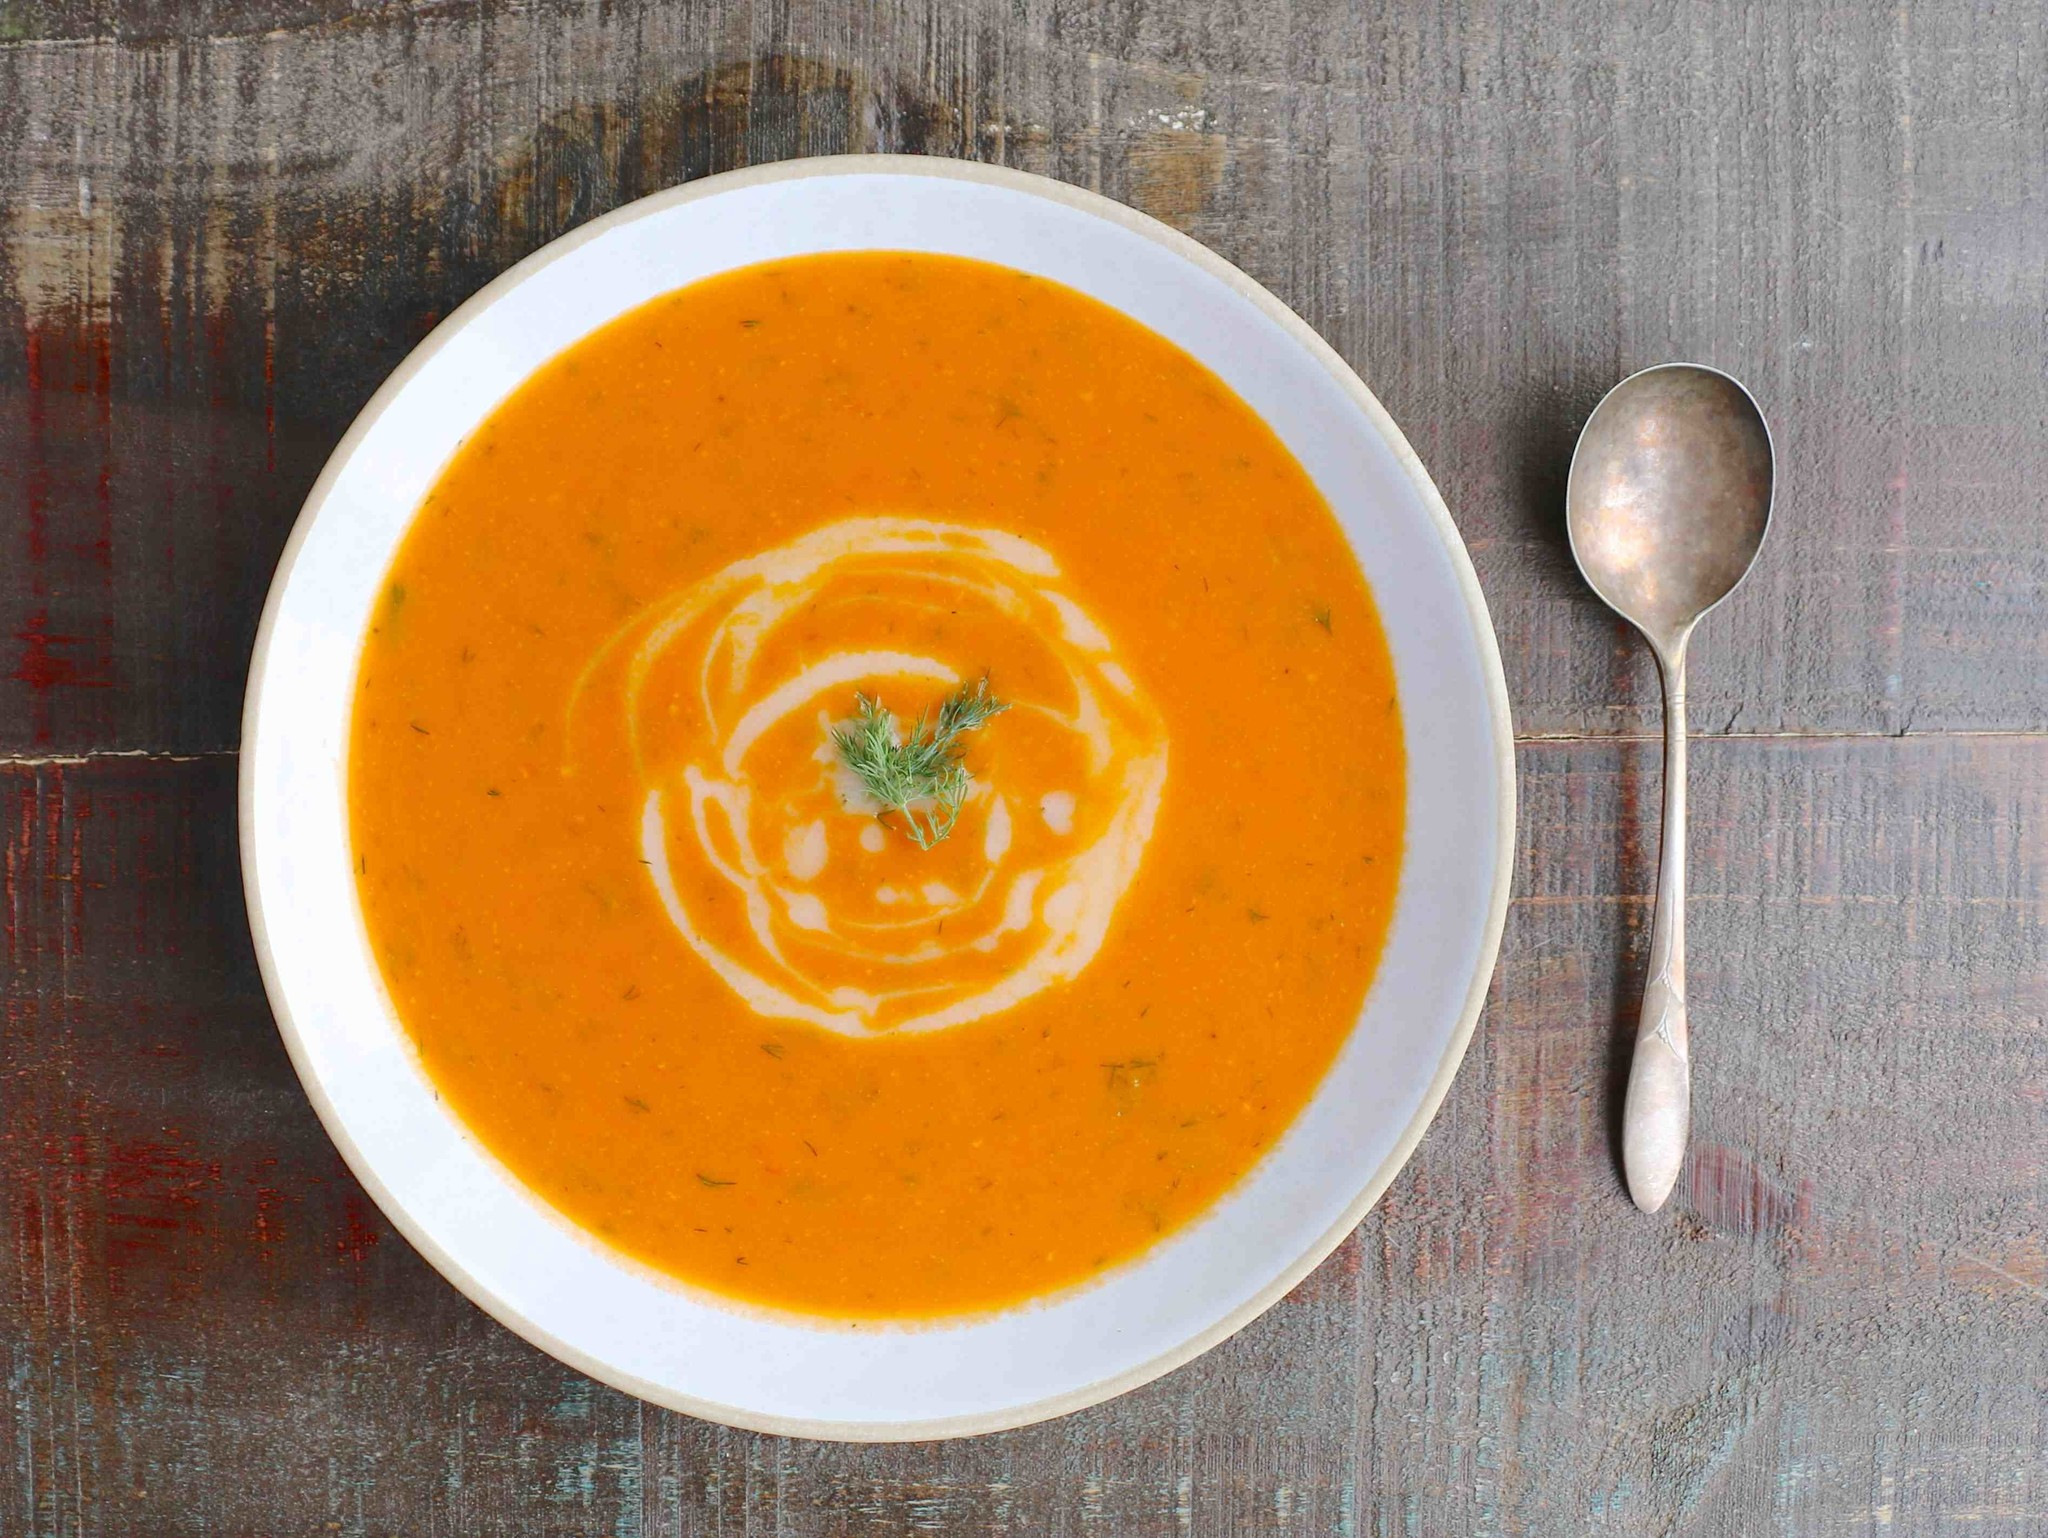 Recipe of the week: Roasted Tomato & Dill Soup